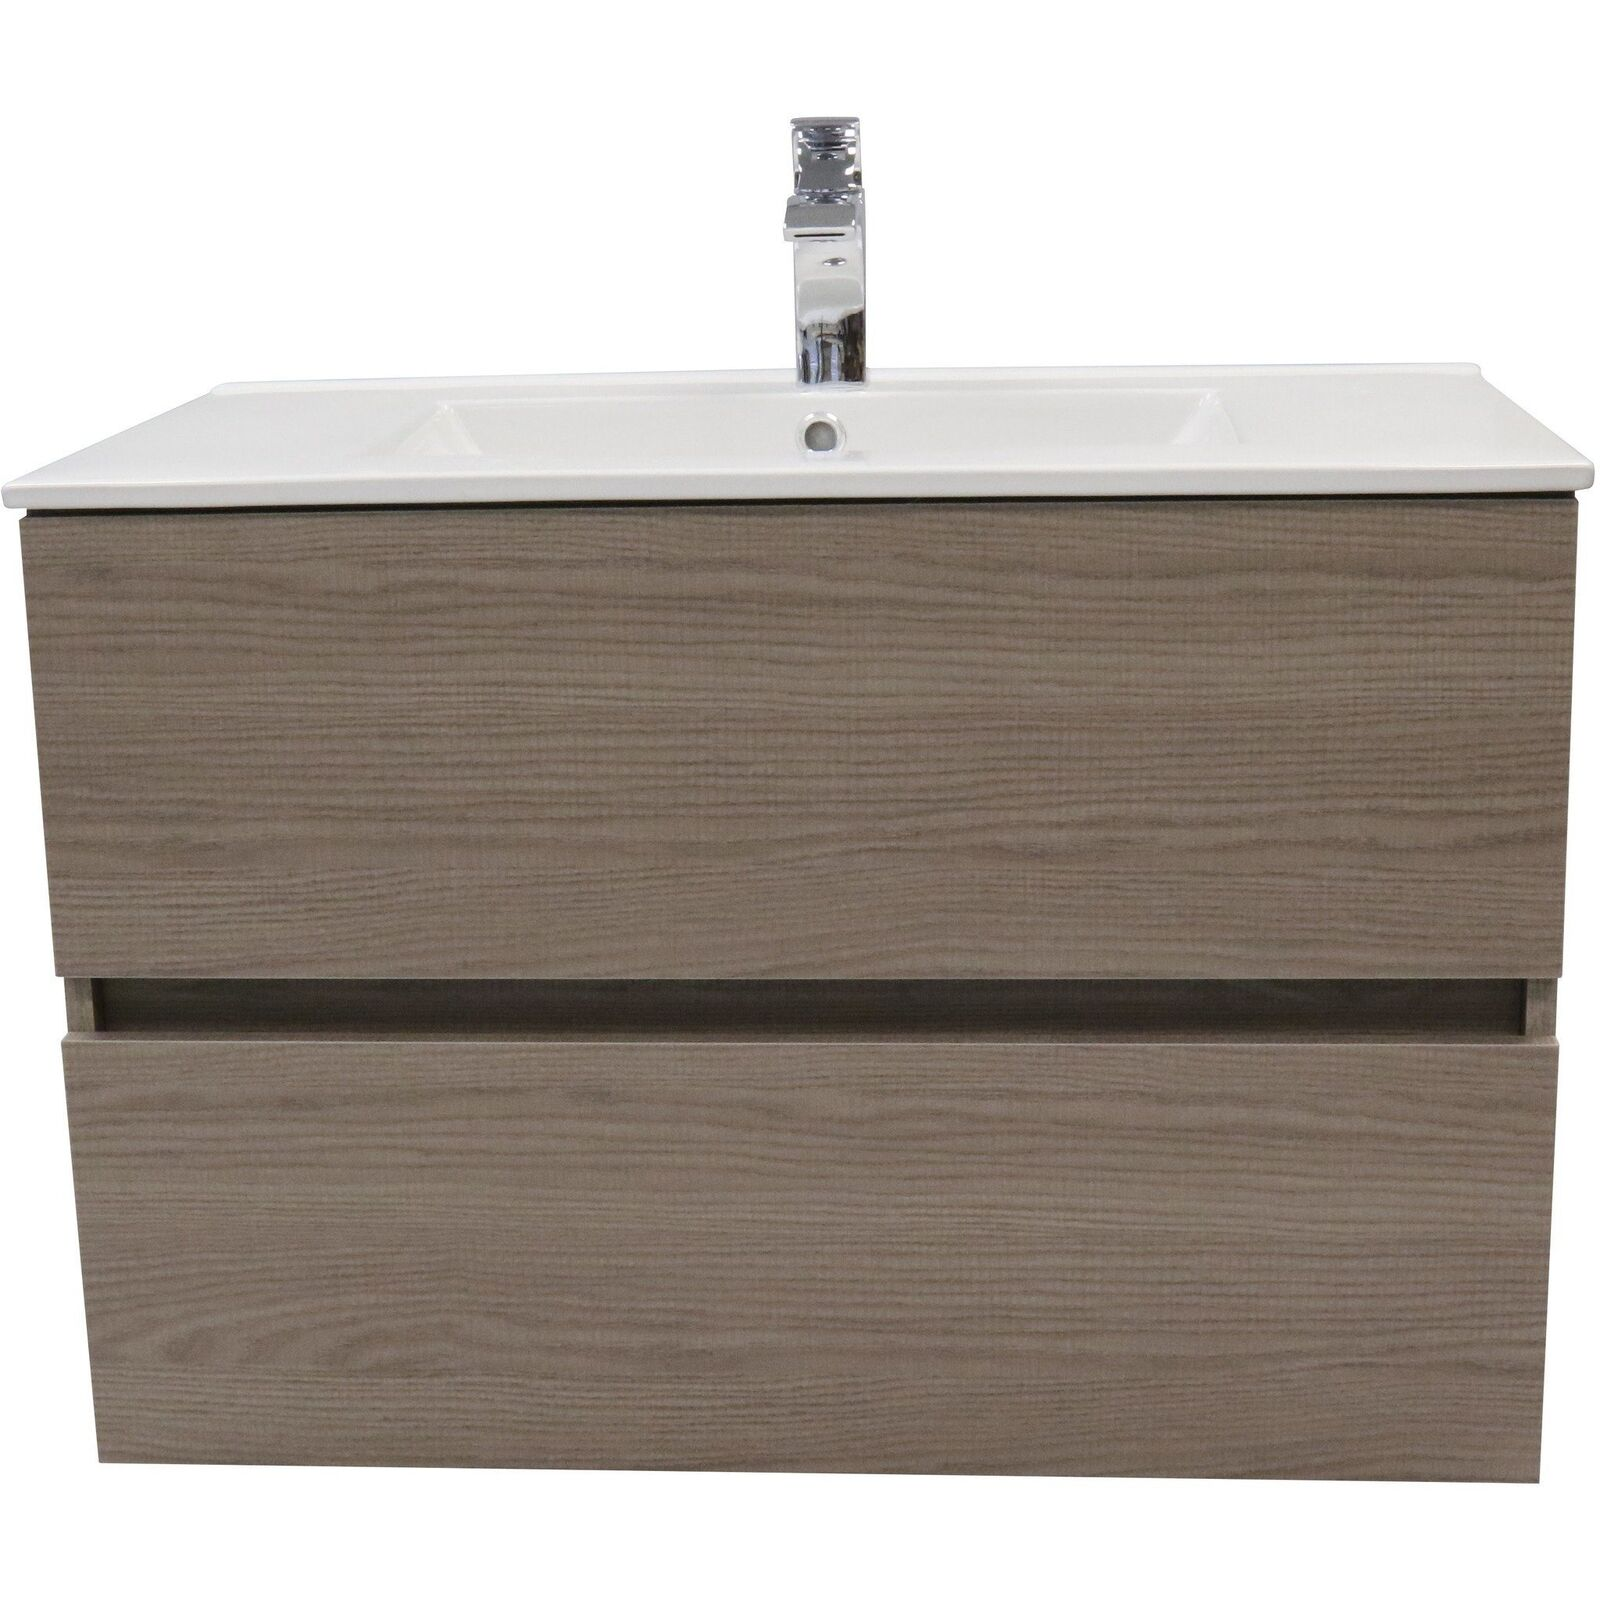 Surf Wall Mounted Bathroom Vanity Cabinet Set Bath Furniture With Single  Sink